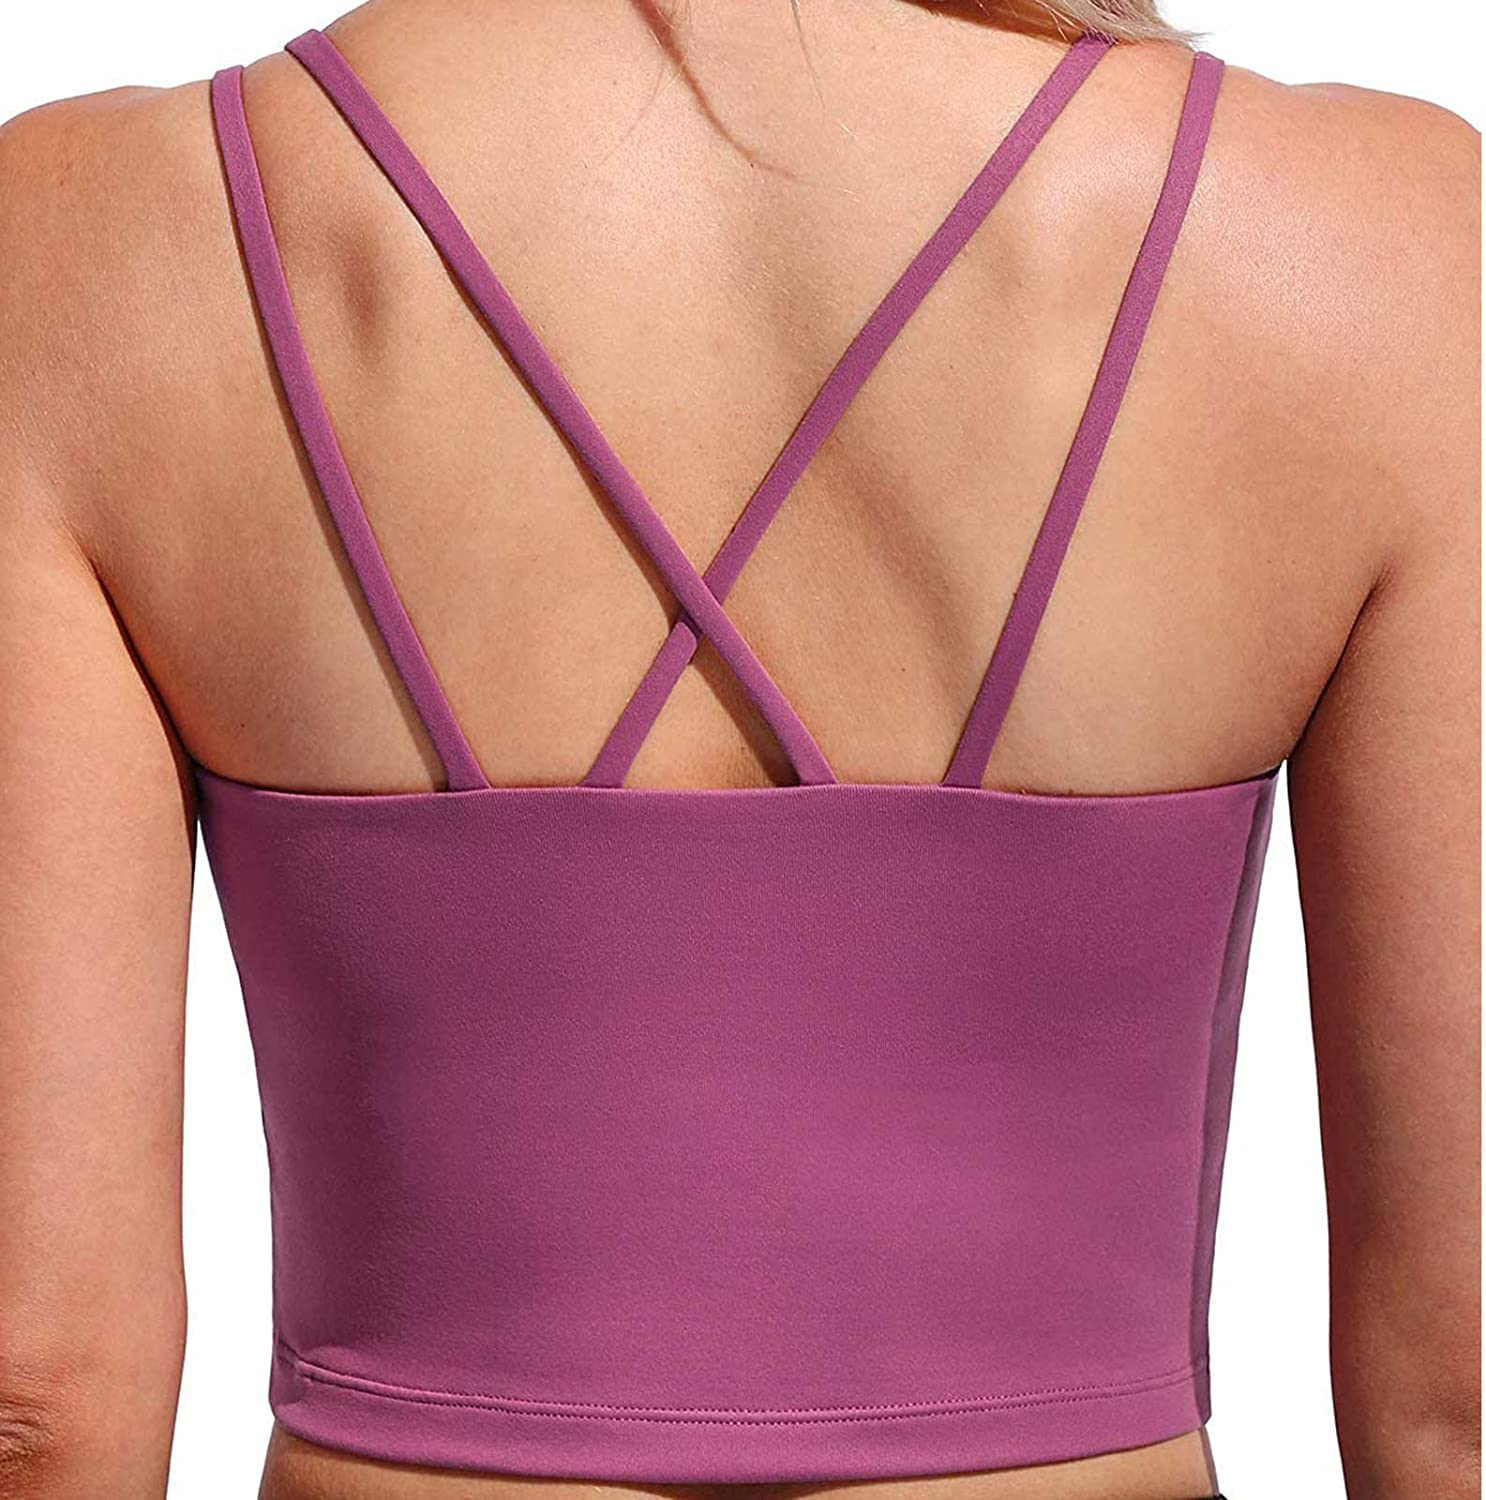 FUNEY Strappy Sports Bras for Women Sexy Crisscross Back Cute Yoga Workout Bra Solid Color U Neck Casual Vest Blouse